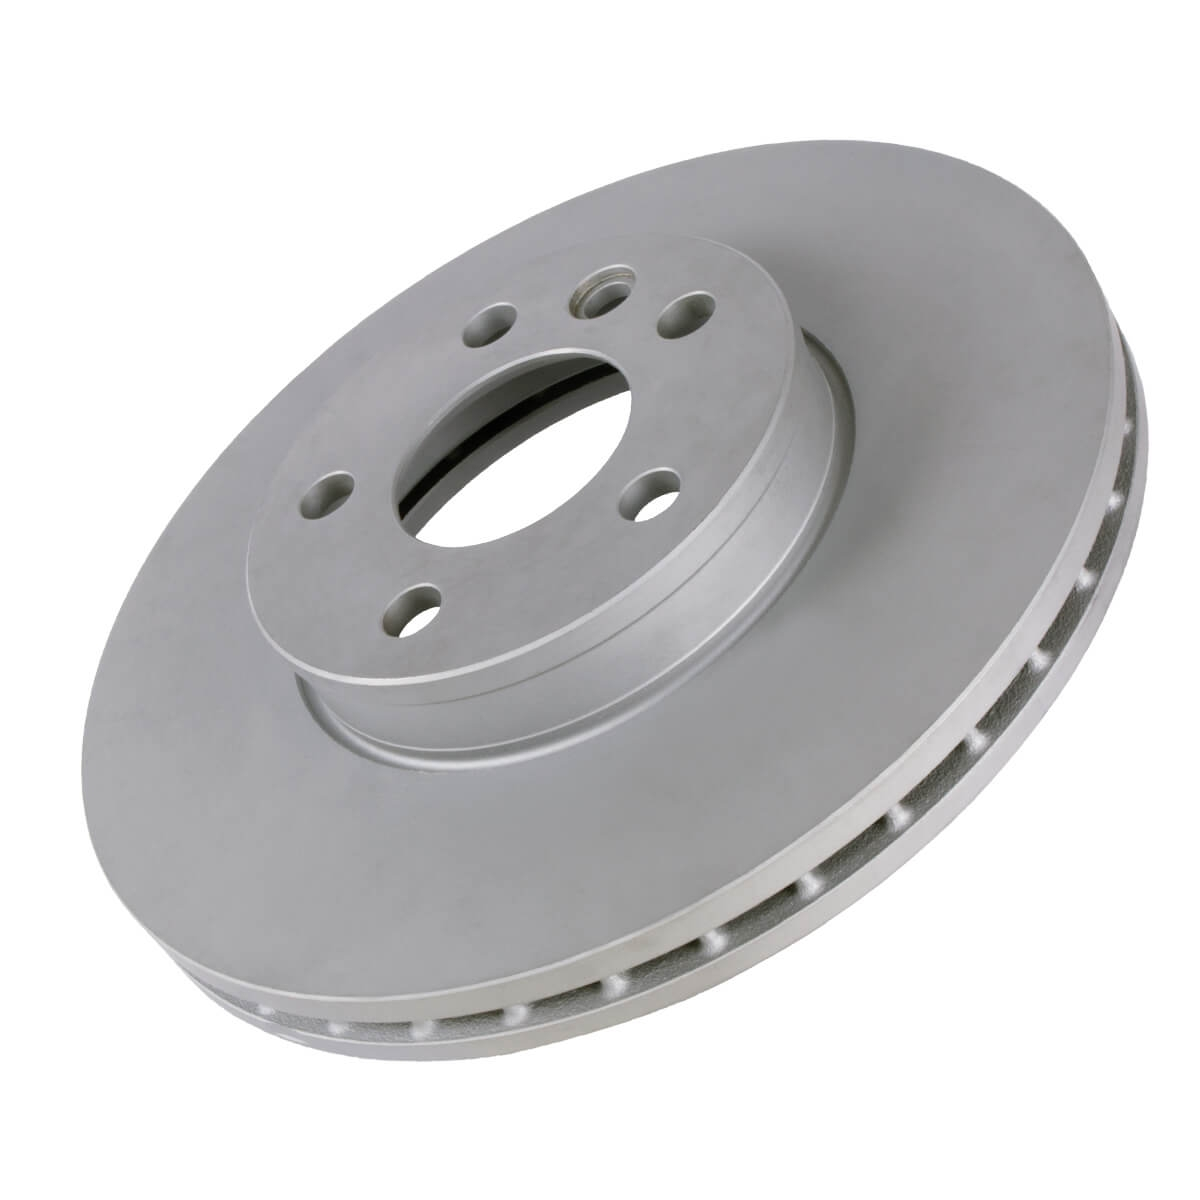 CITROEN C4 SPACETOURER Brake Disc